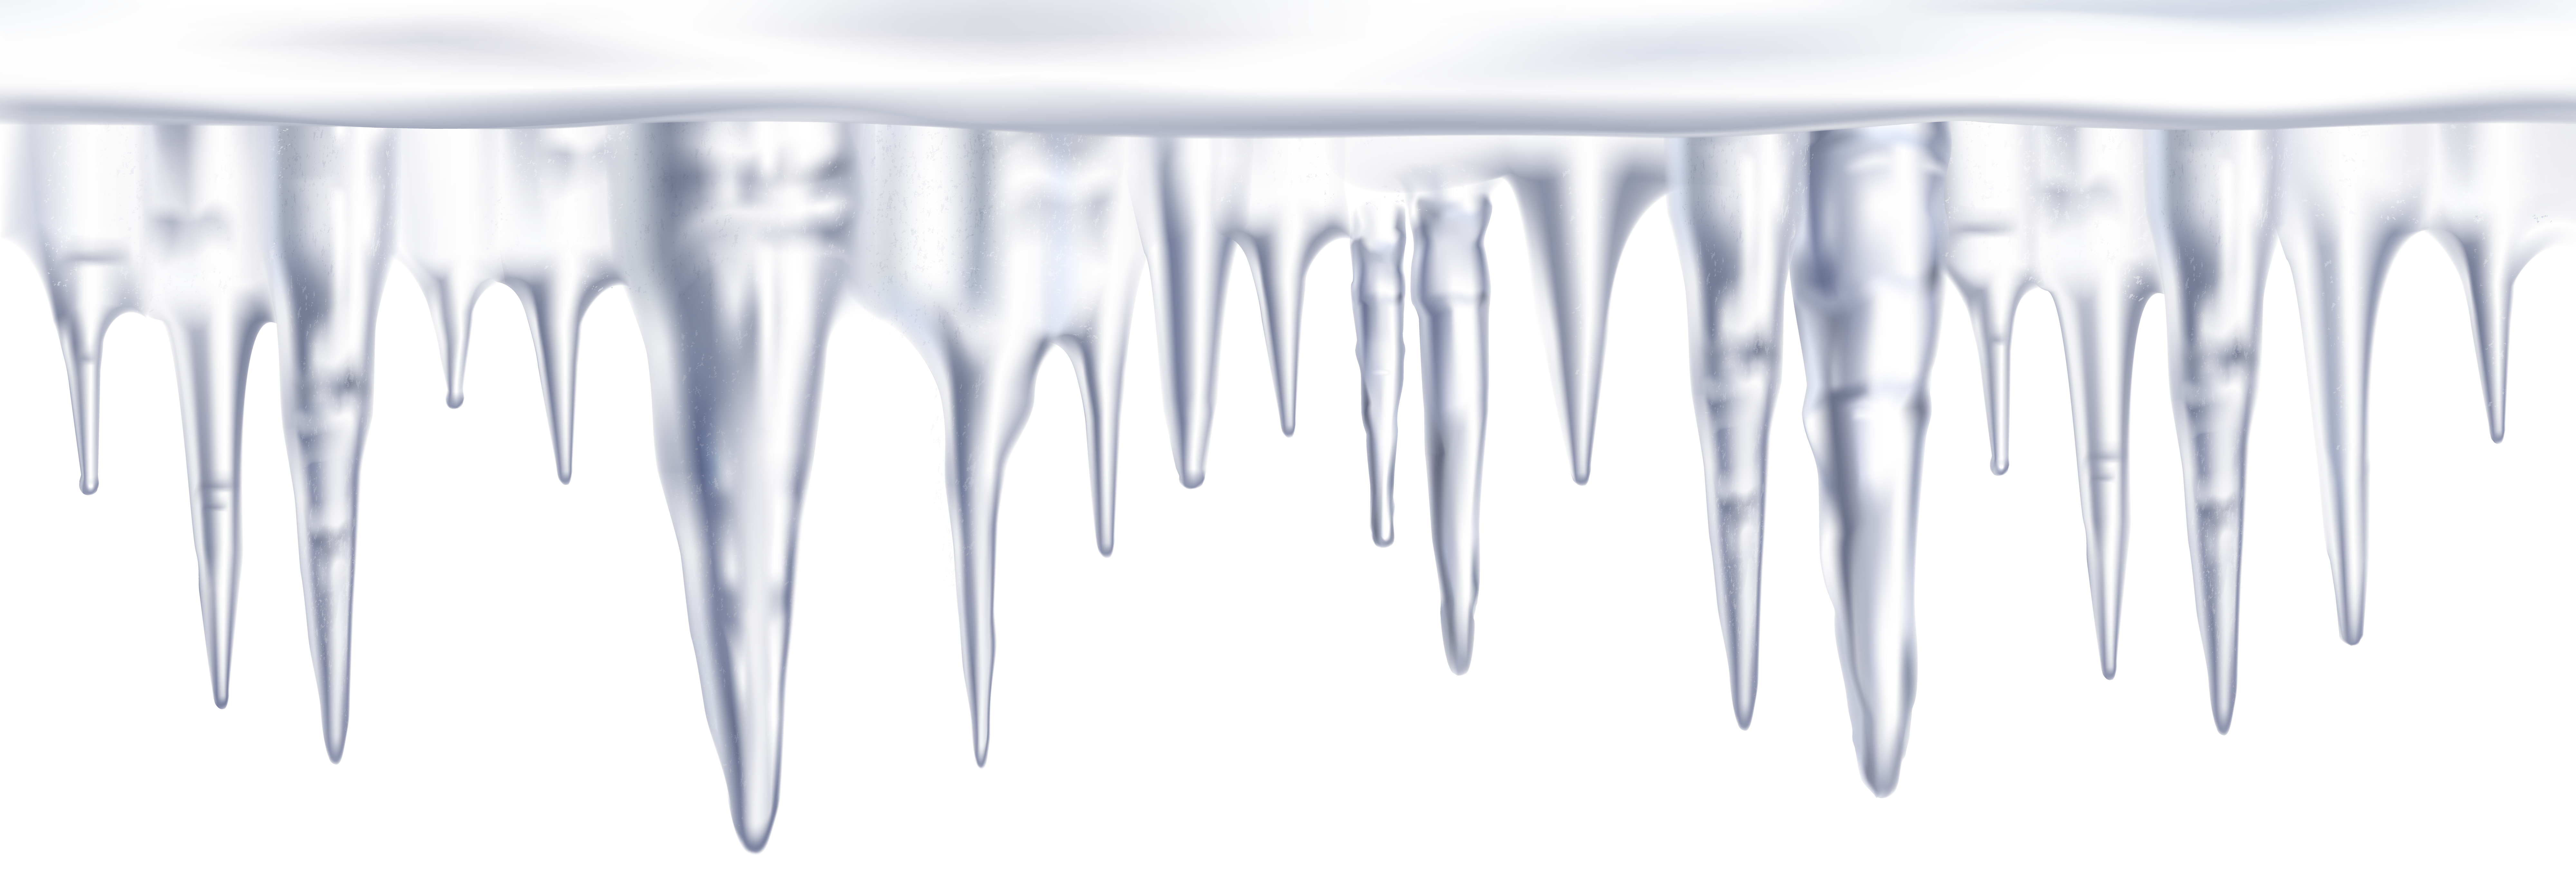 icicles on roof png